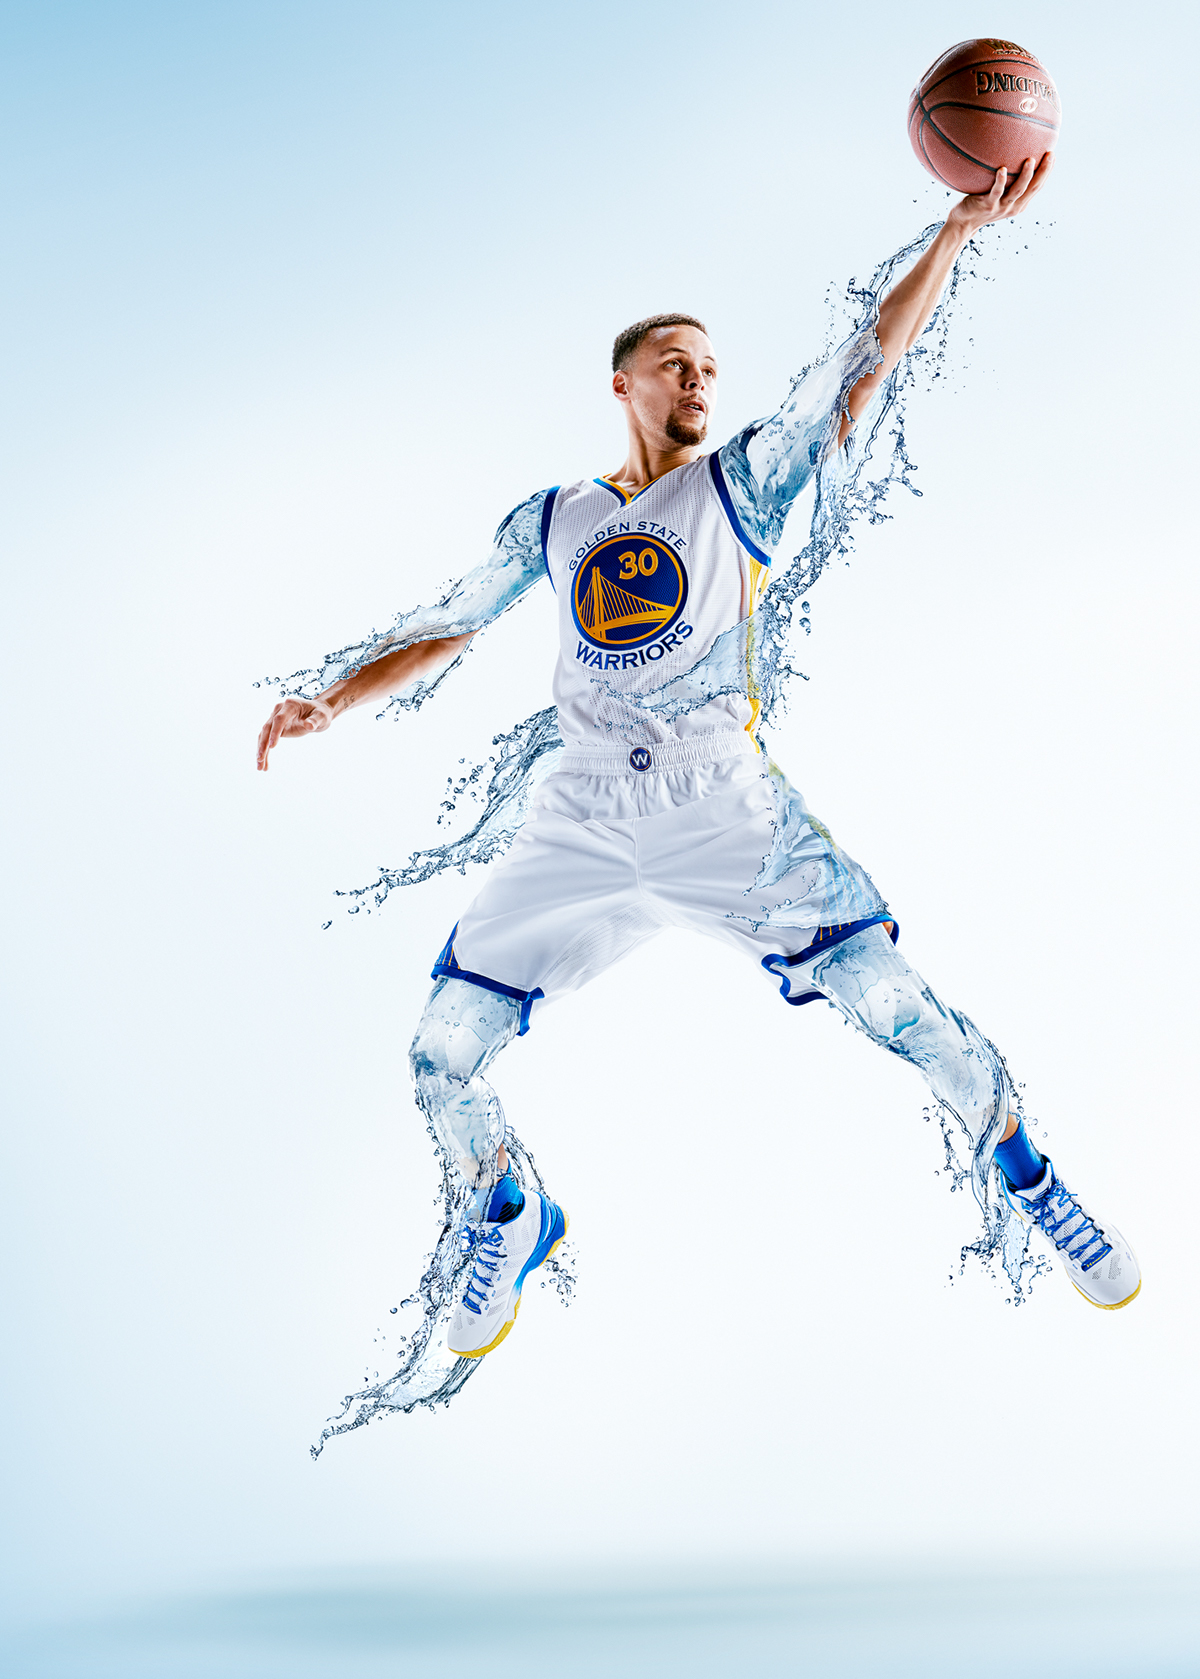 separation shoes 663f2 9aa43 Steph Curry for Brita